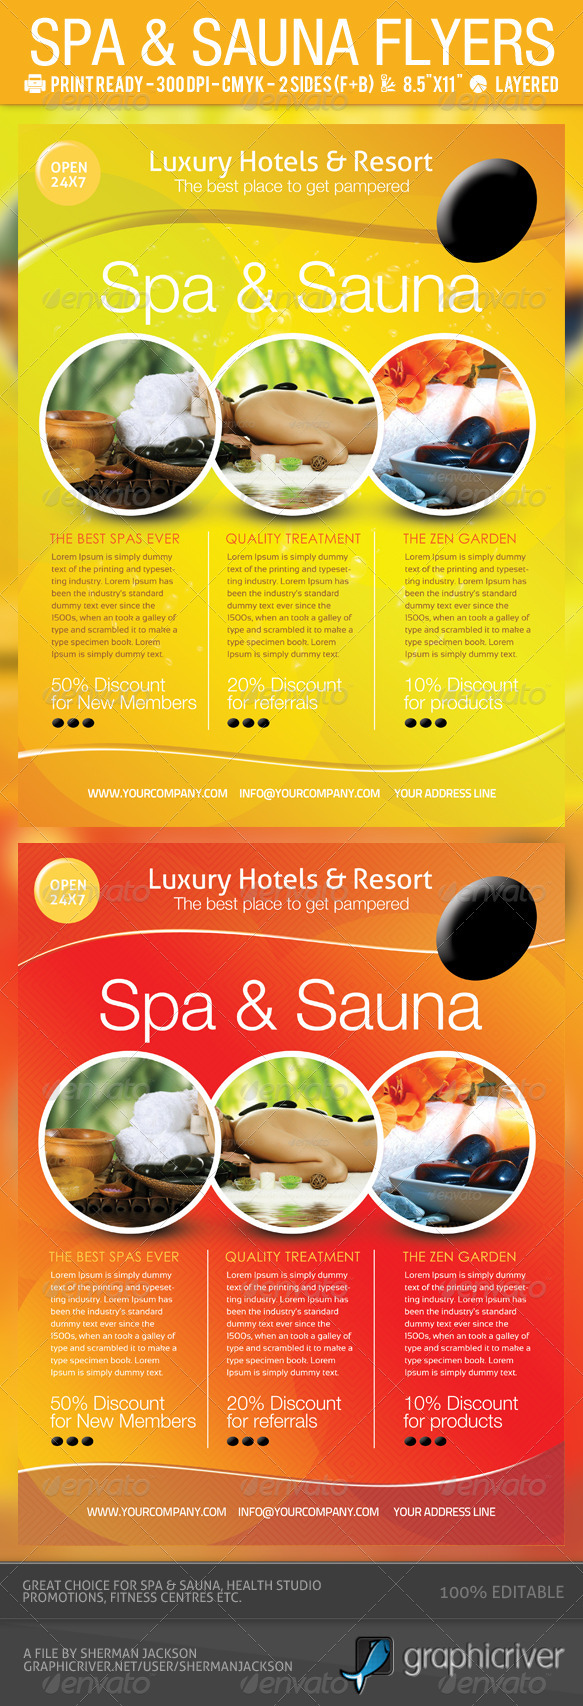 Spa & Sauna Flyers PSD Template - Commerce Flyers